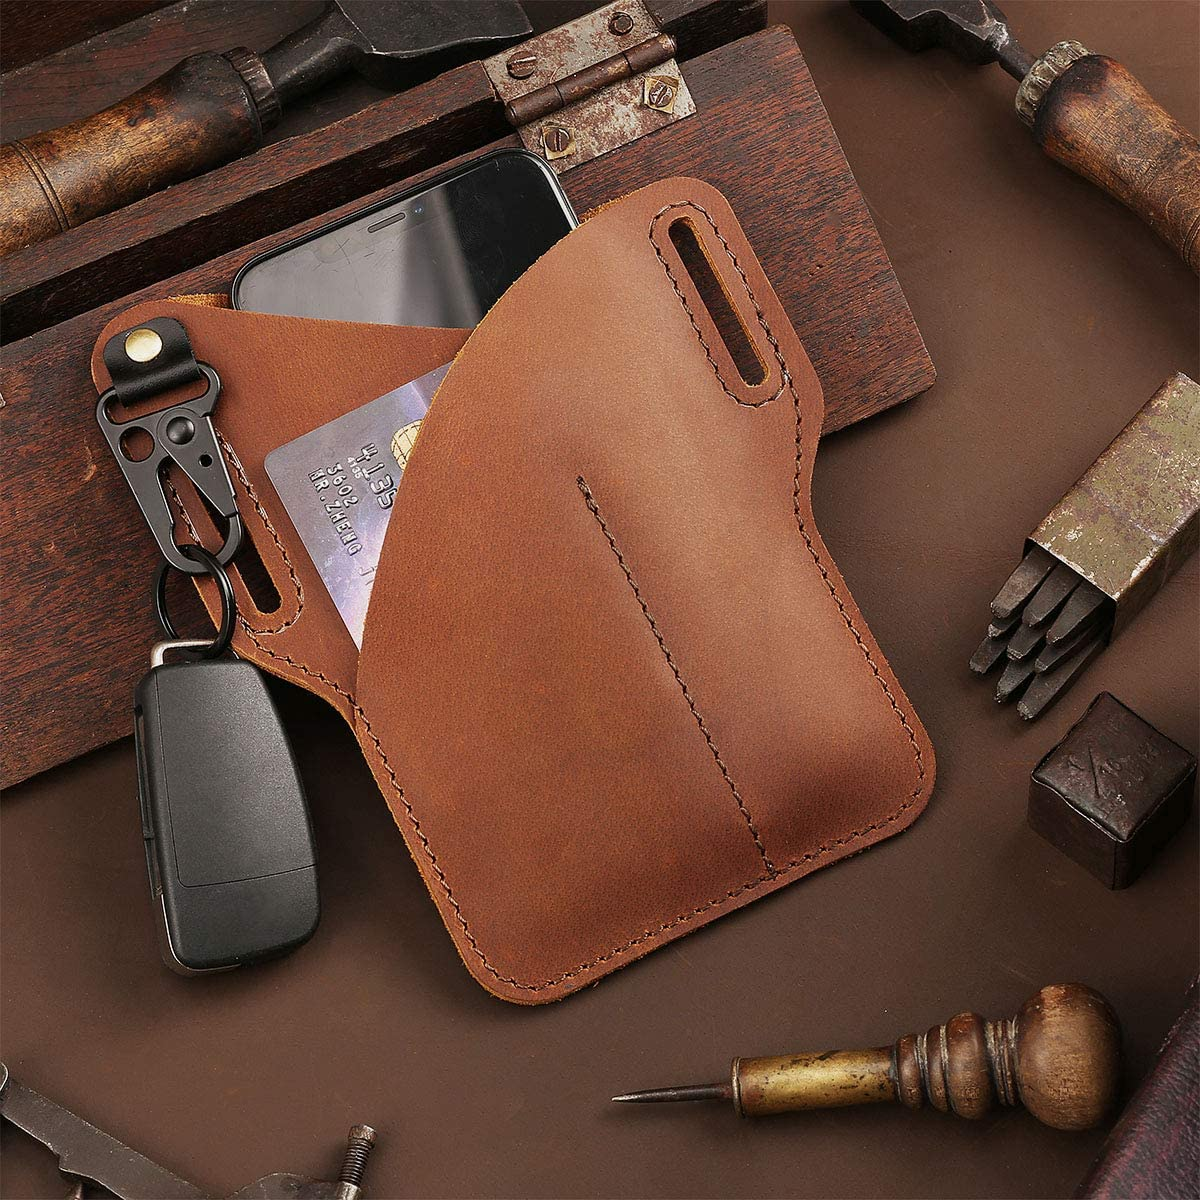 EASYANT Leather Phone Holster for Men Belt Loop with Key Holder Waist Card Bag Phone Holsters for Cell Phone